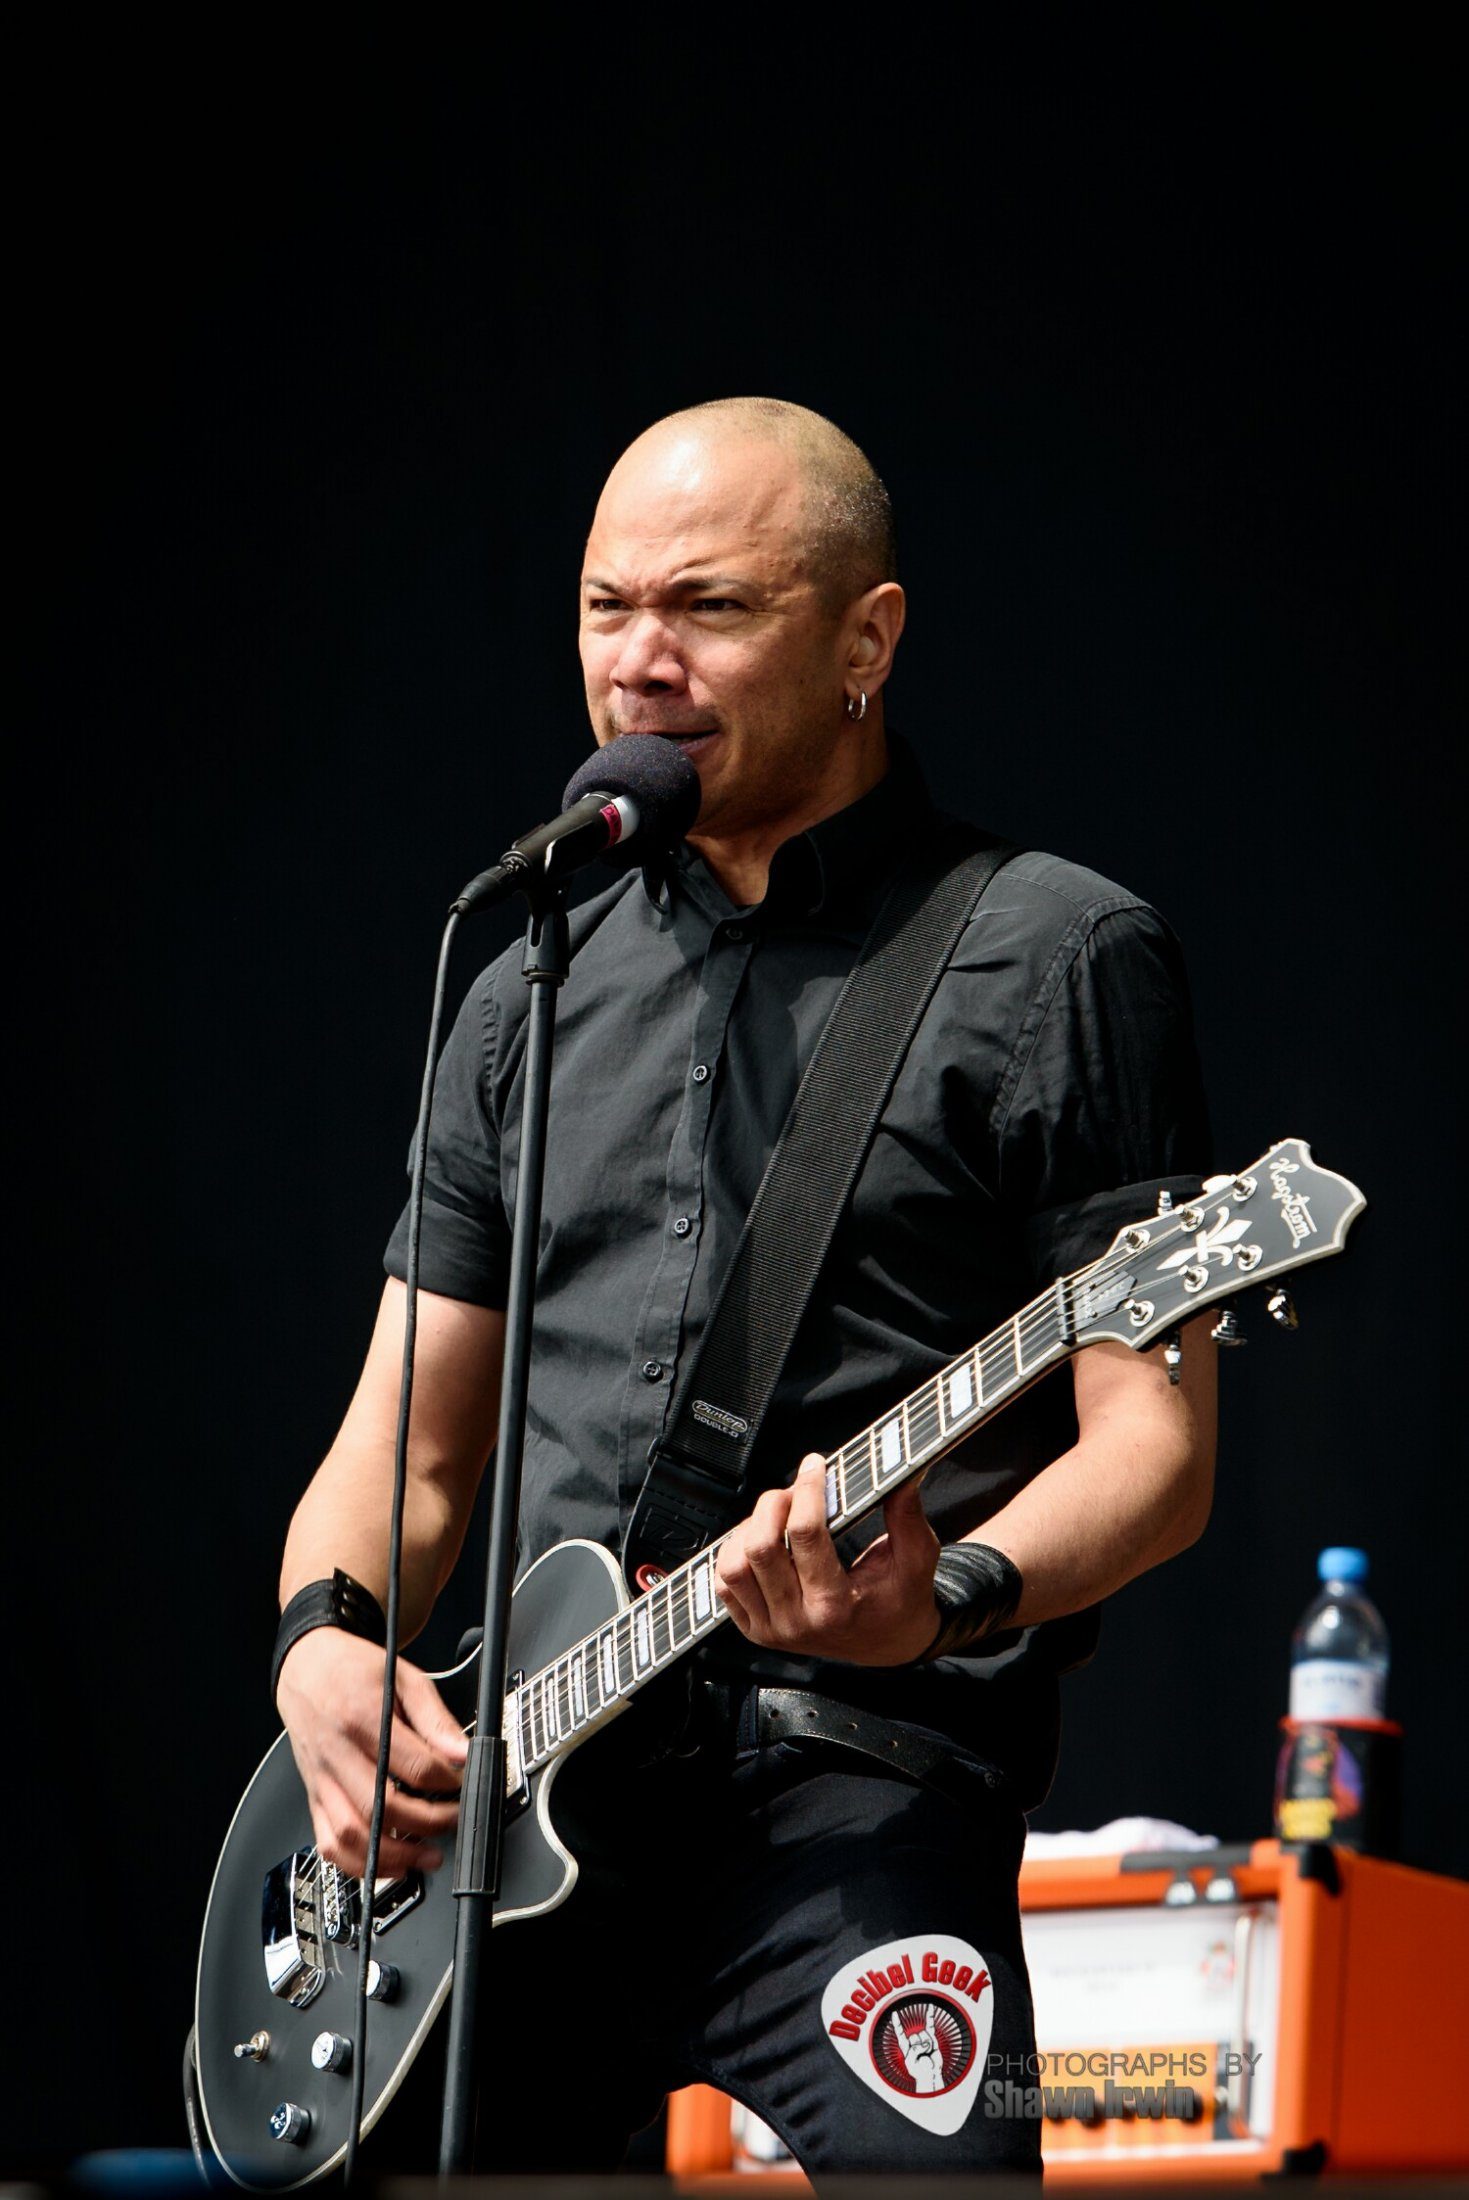 Danko Jones #10-SRF 2019-Shawn Irwin